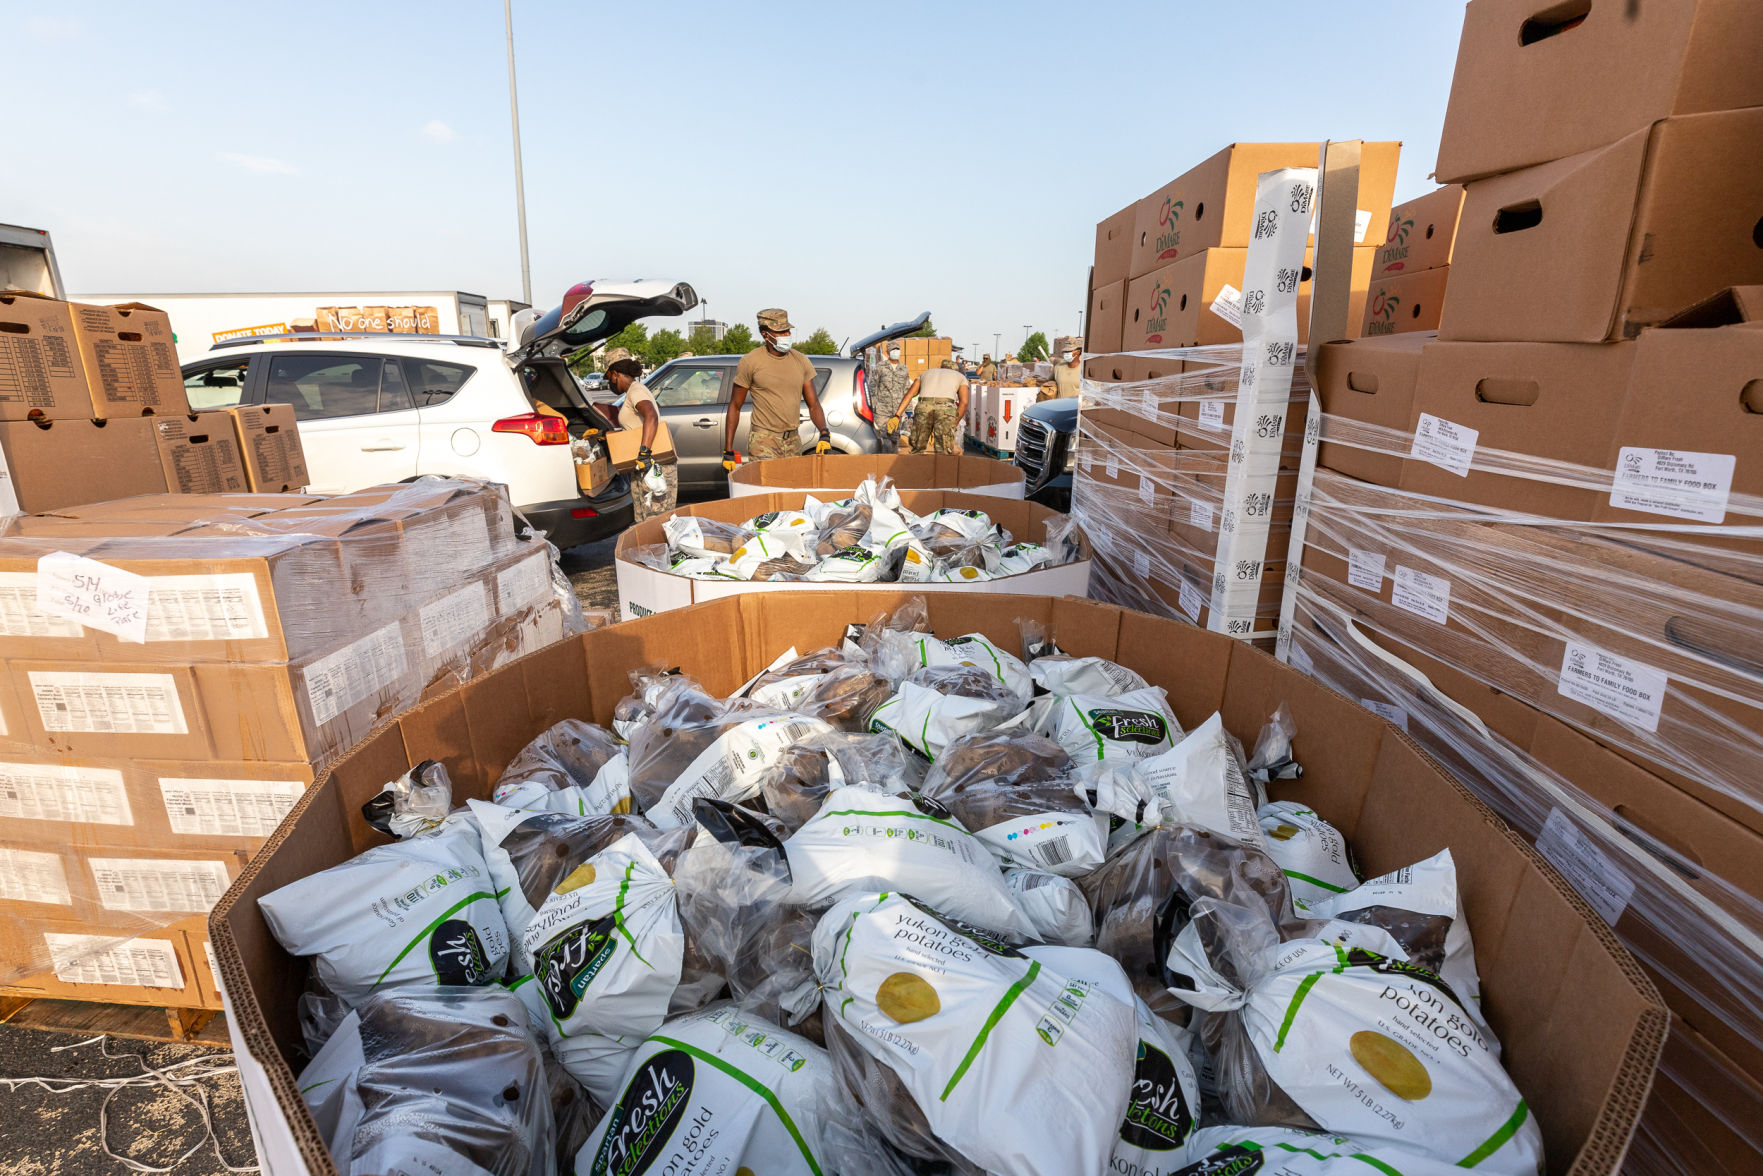 Tarrant Area Food Bank distributes thousands of pounds of food to families struggling amid COVID-19